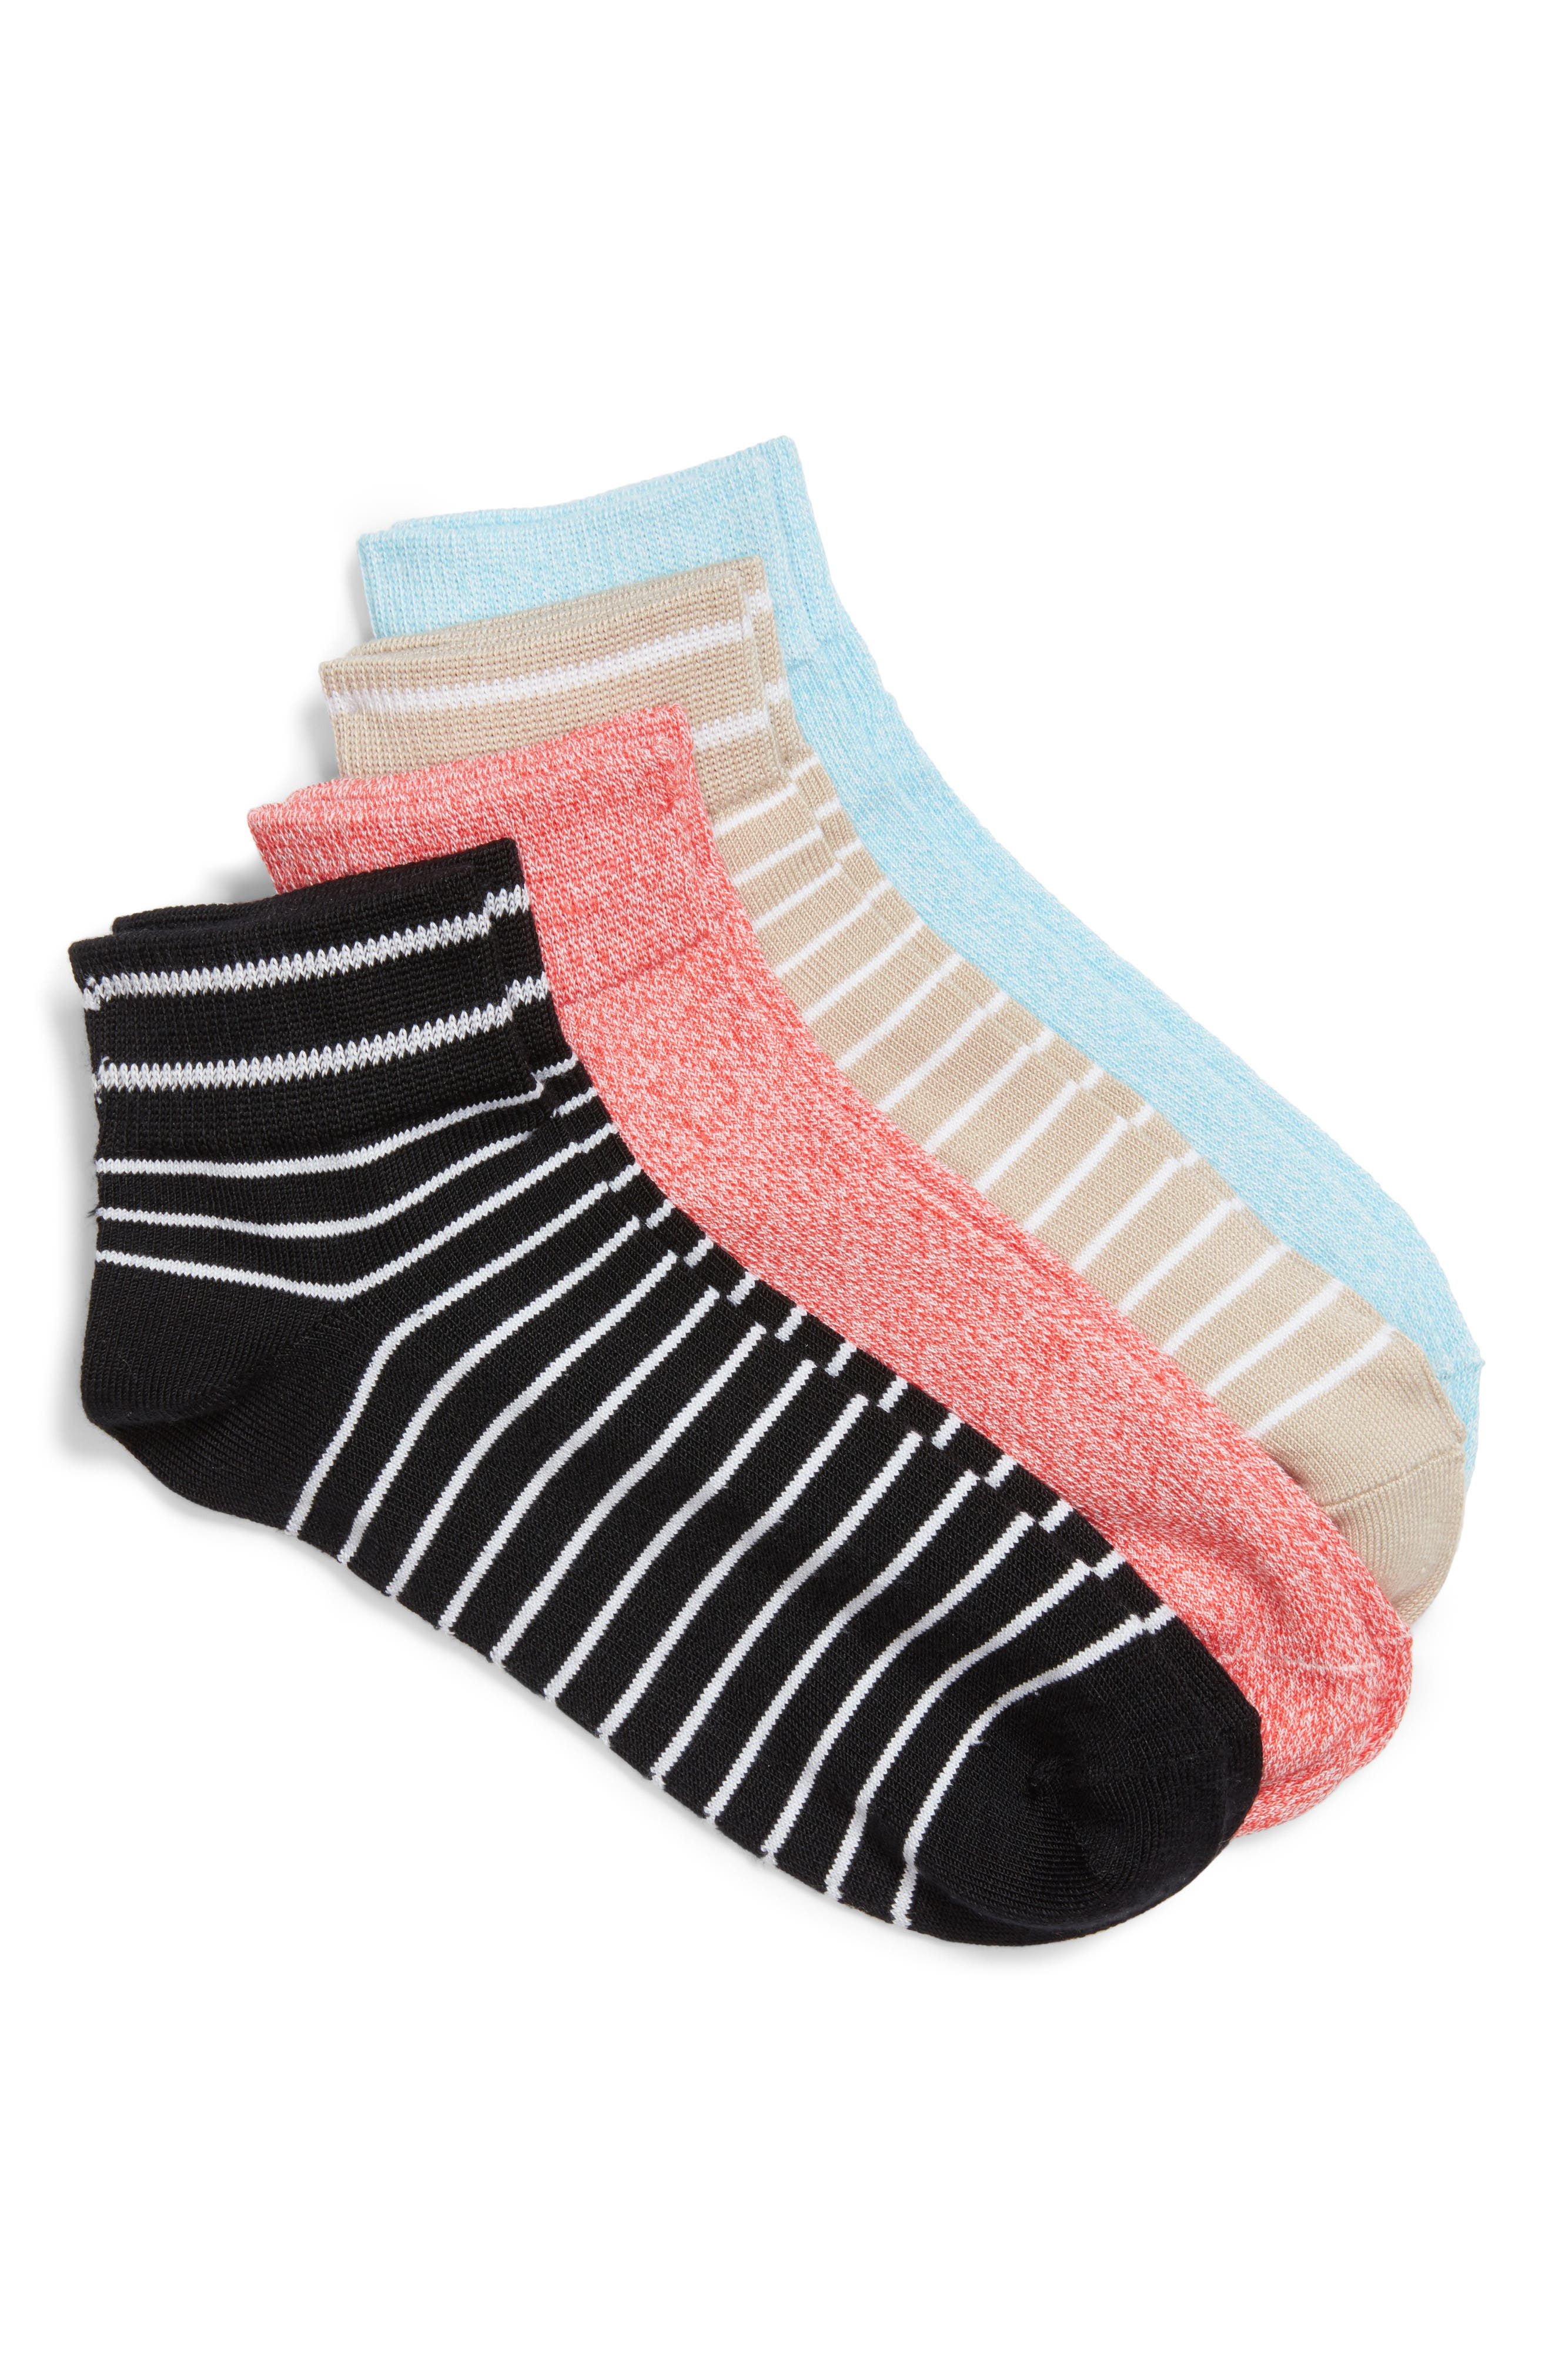 4-Pack Ankle Socks,                         Main,                         color, Coral Bliss Pack